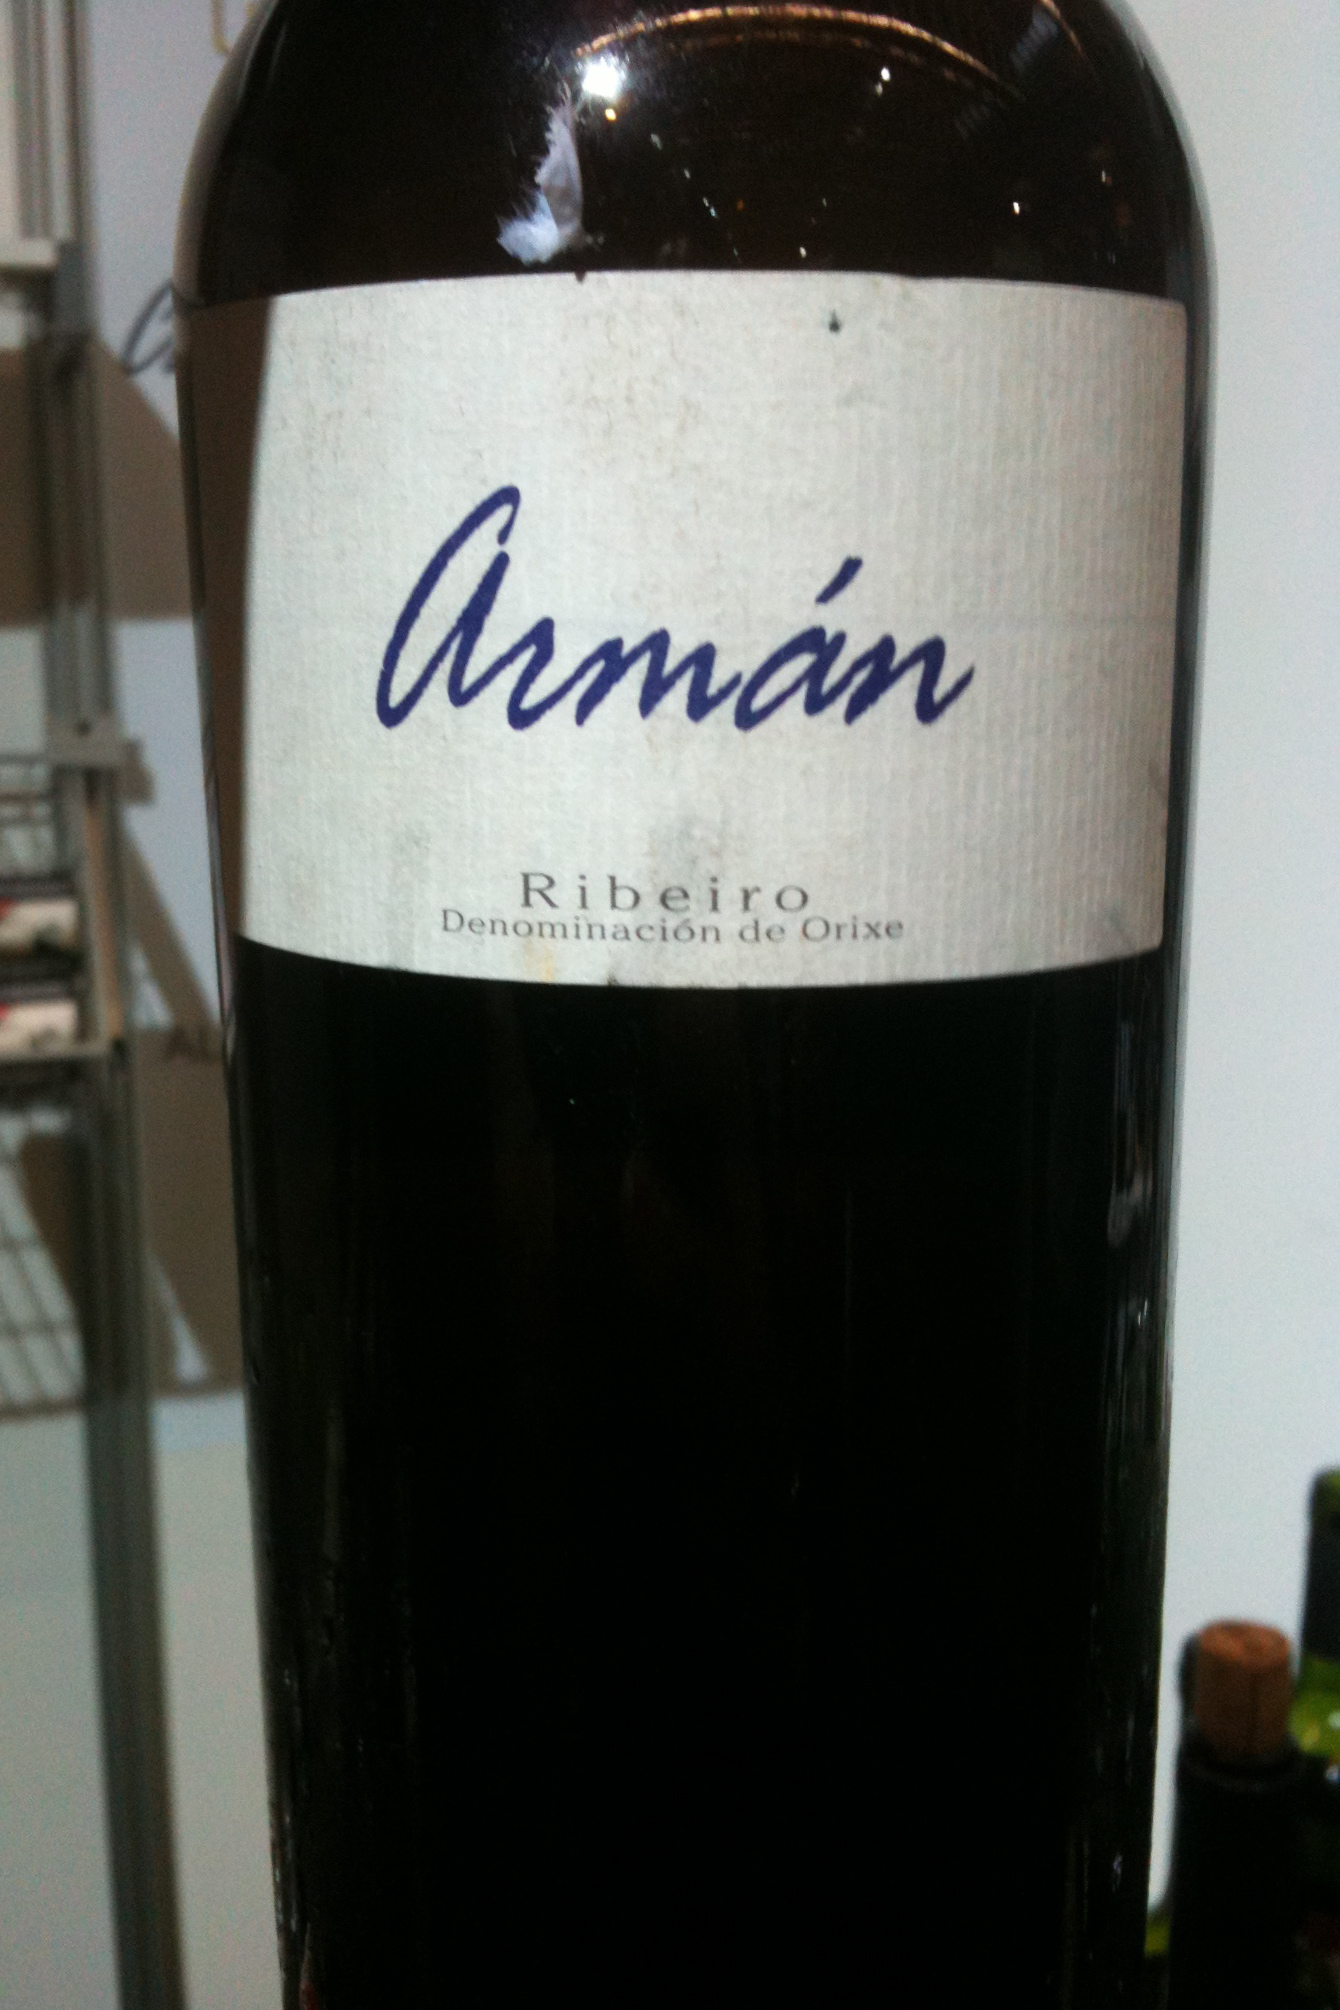 DO Ribeiro wine from Galicia in Spain